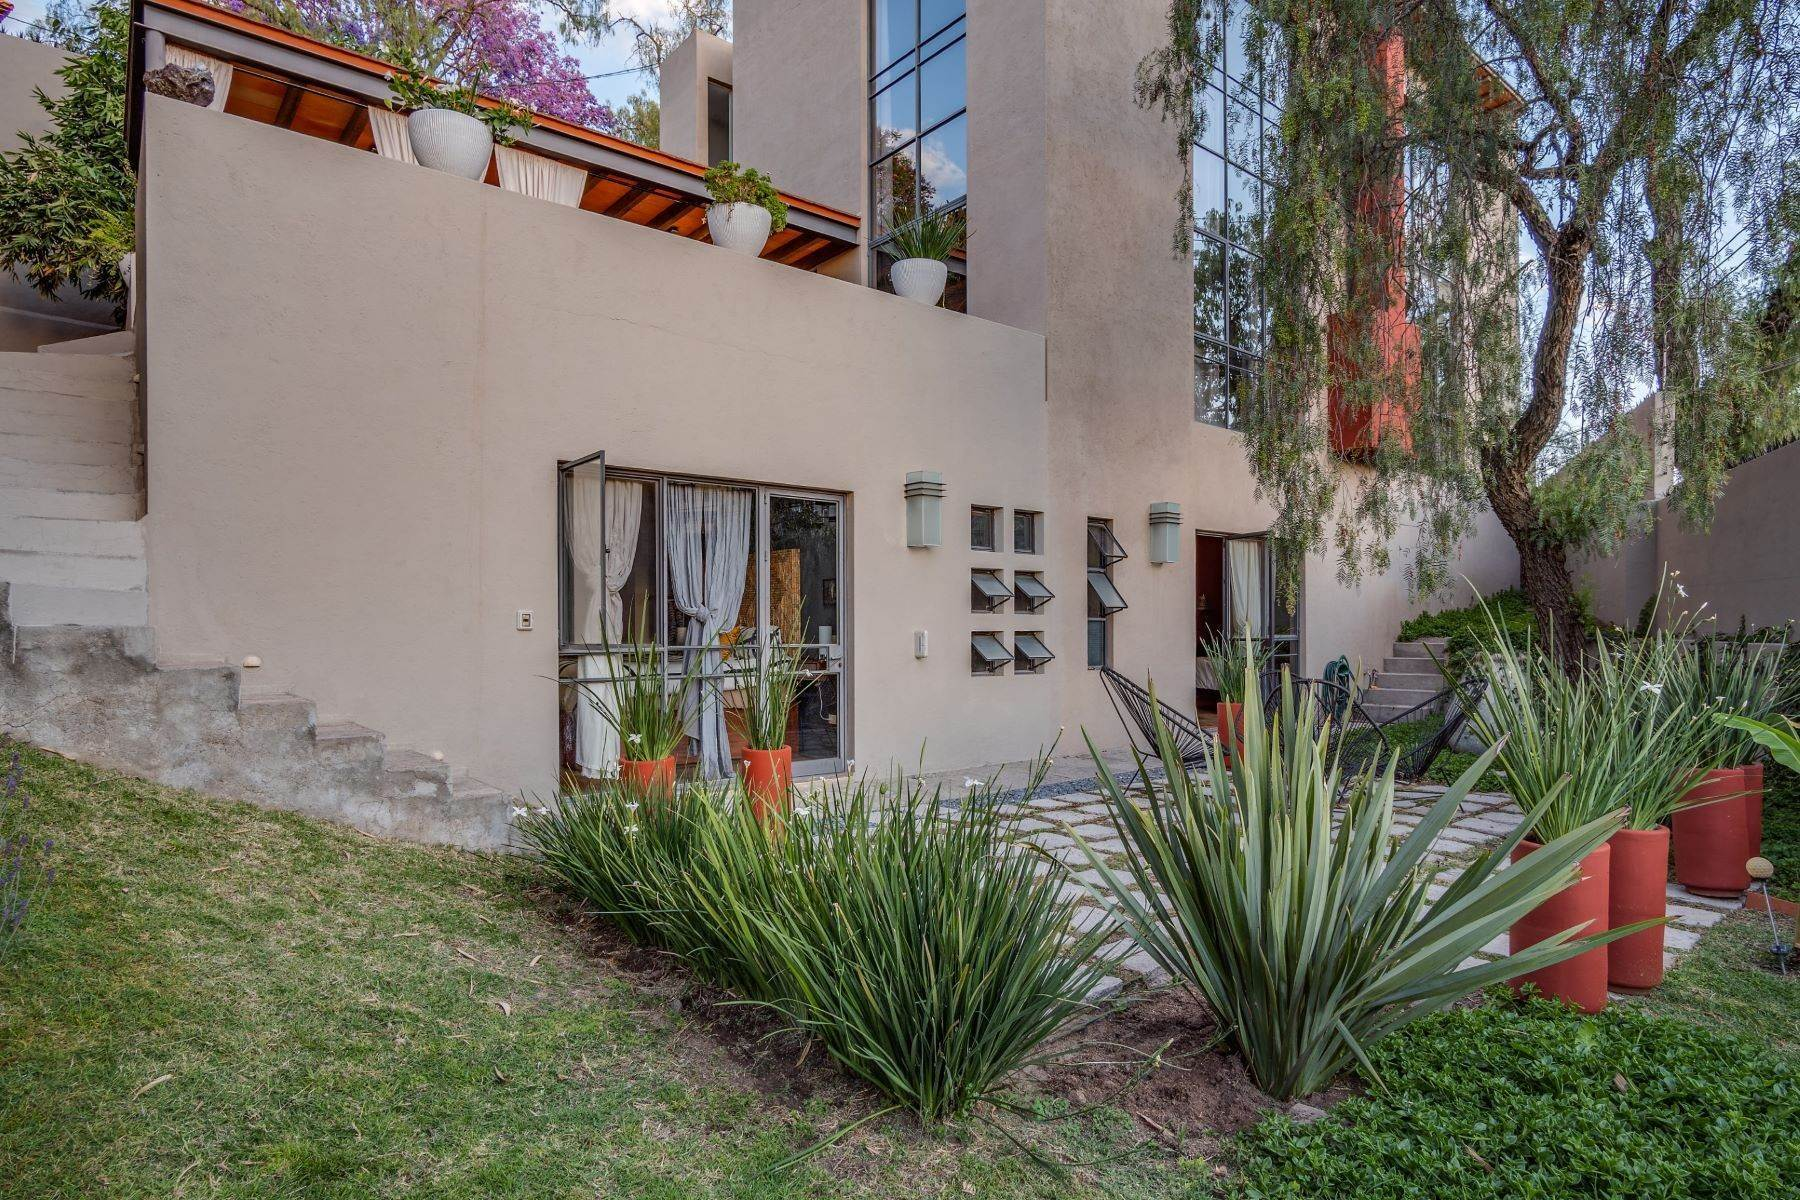 Single Family Homes for Sale at Casa Faroles Faroles 1 San Miguel De Allende, Guanajuato 37740 Mexico